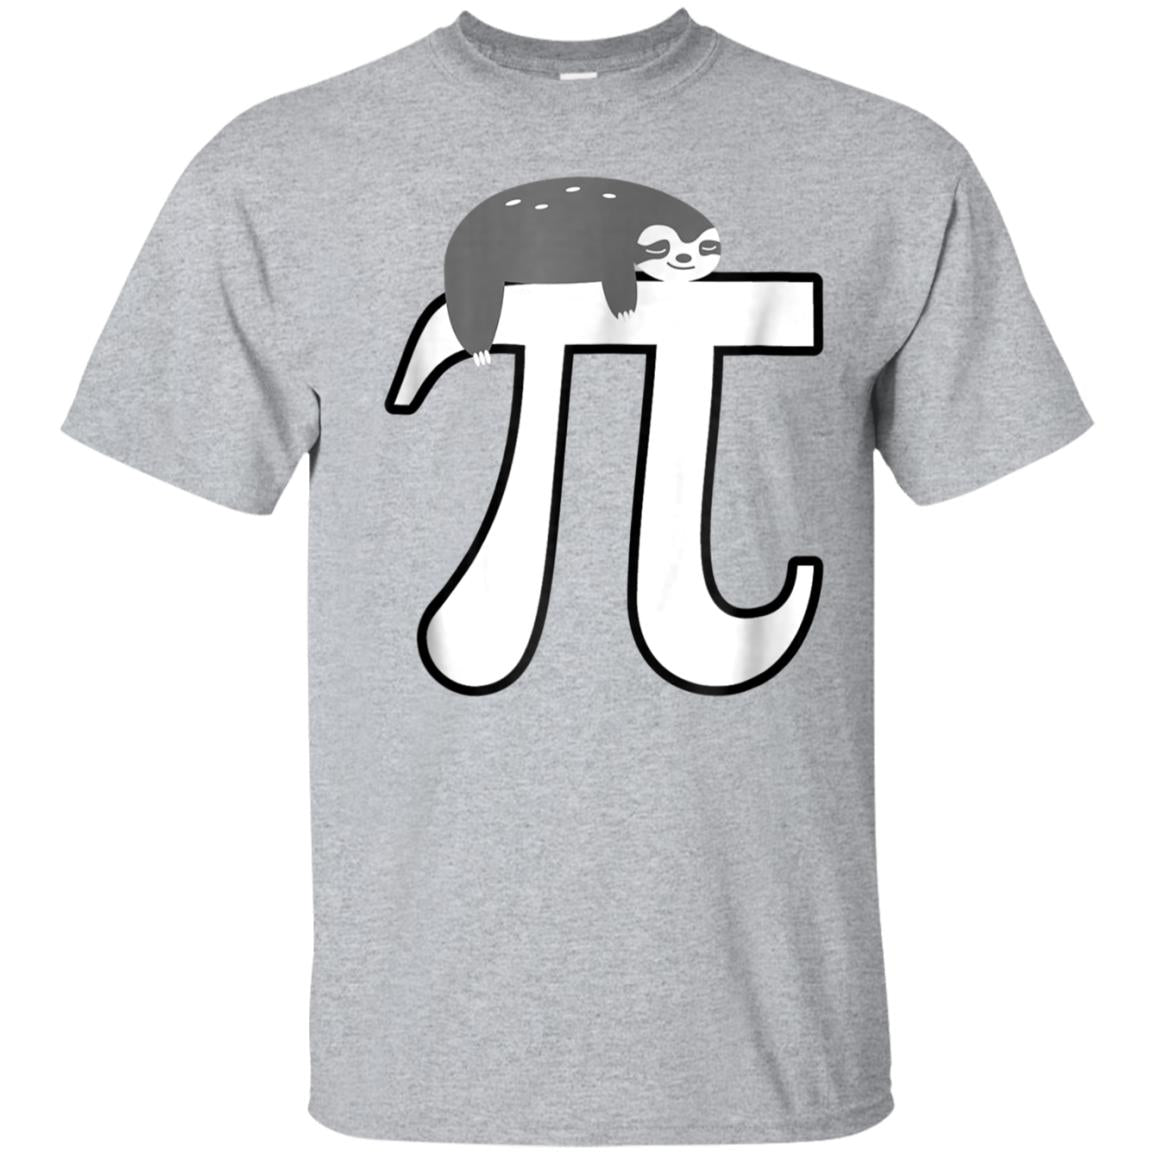 Pi Day 2019 TShirt Sloth Math Lover Nerd Gift 99promocode